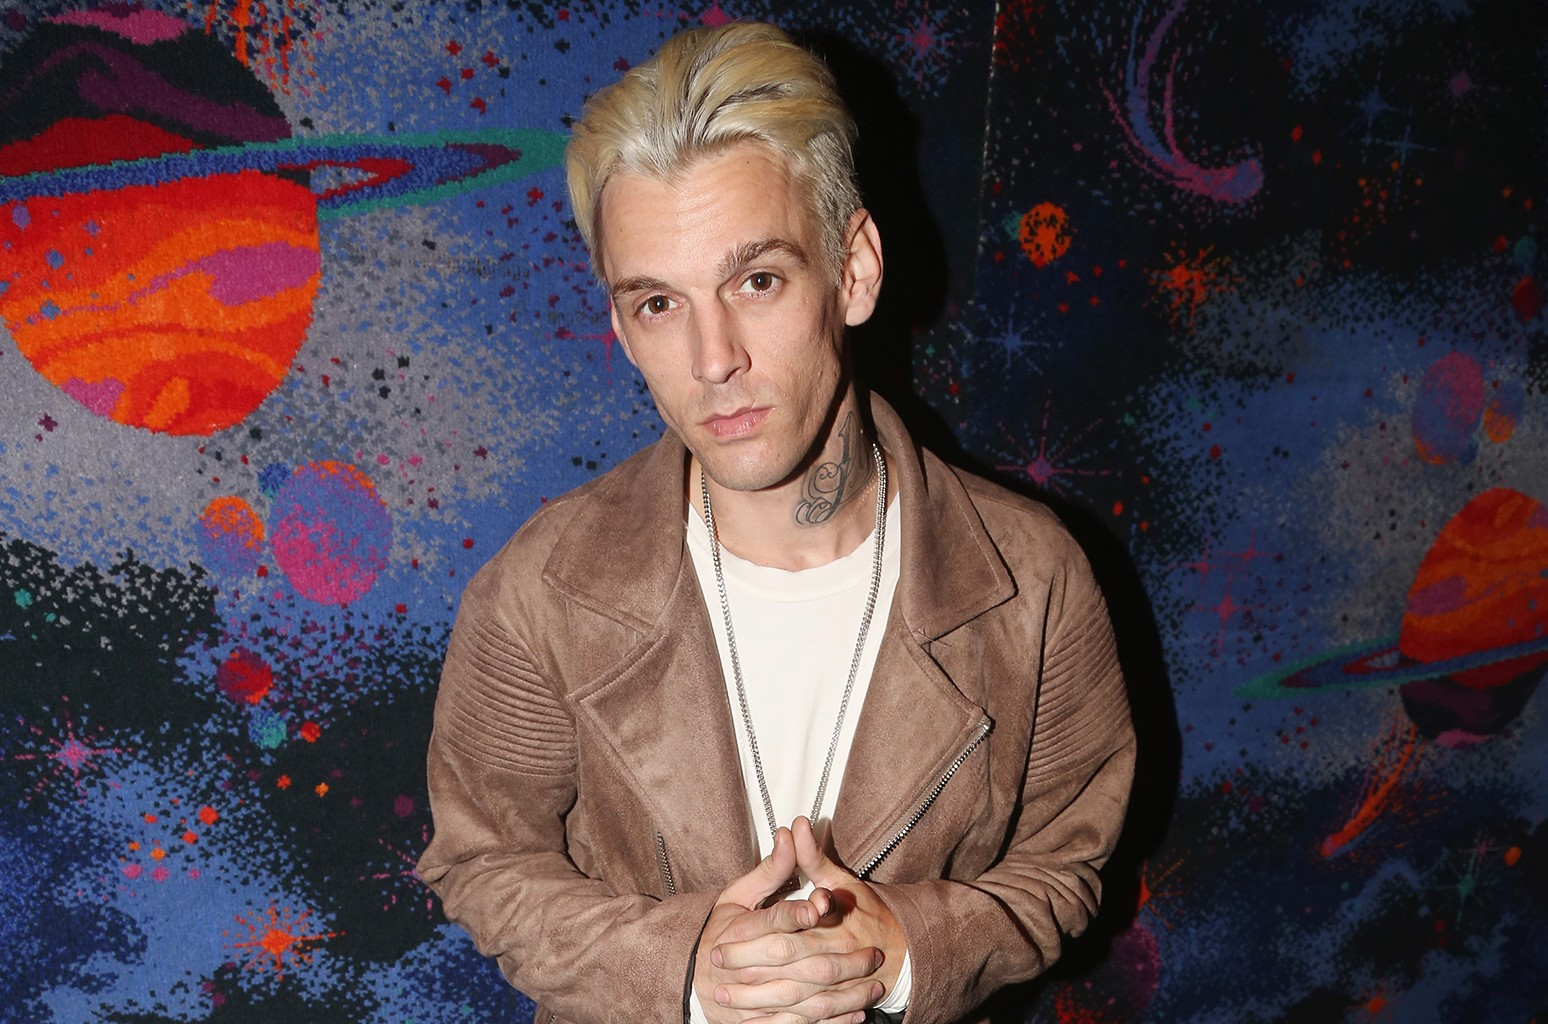 Aaron Carter photographed at Planet Hollywood Times Square on April 24, 2017 in New York City.